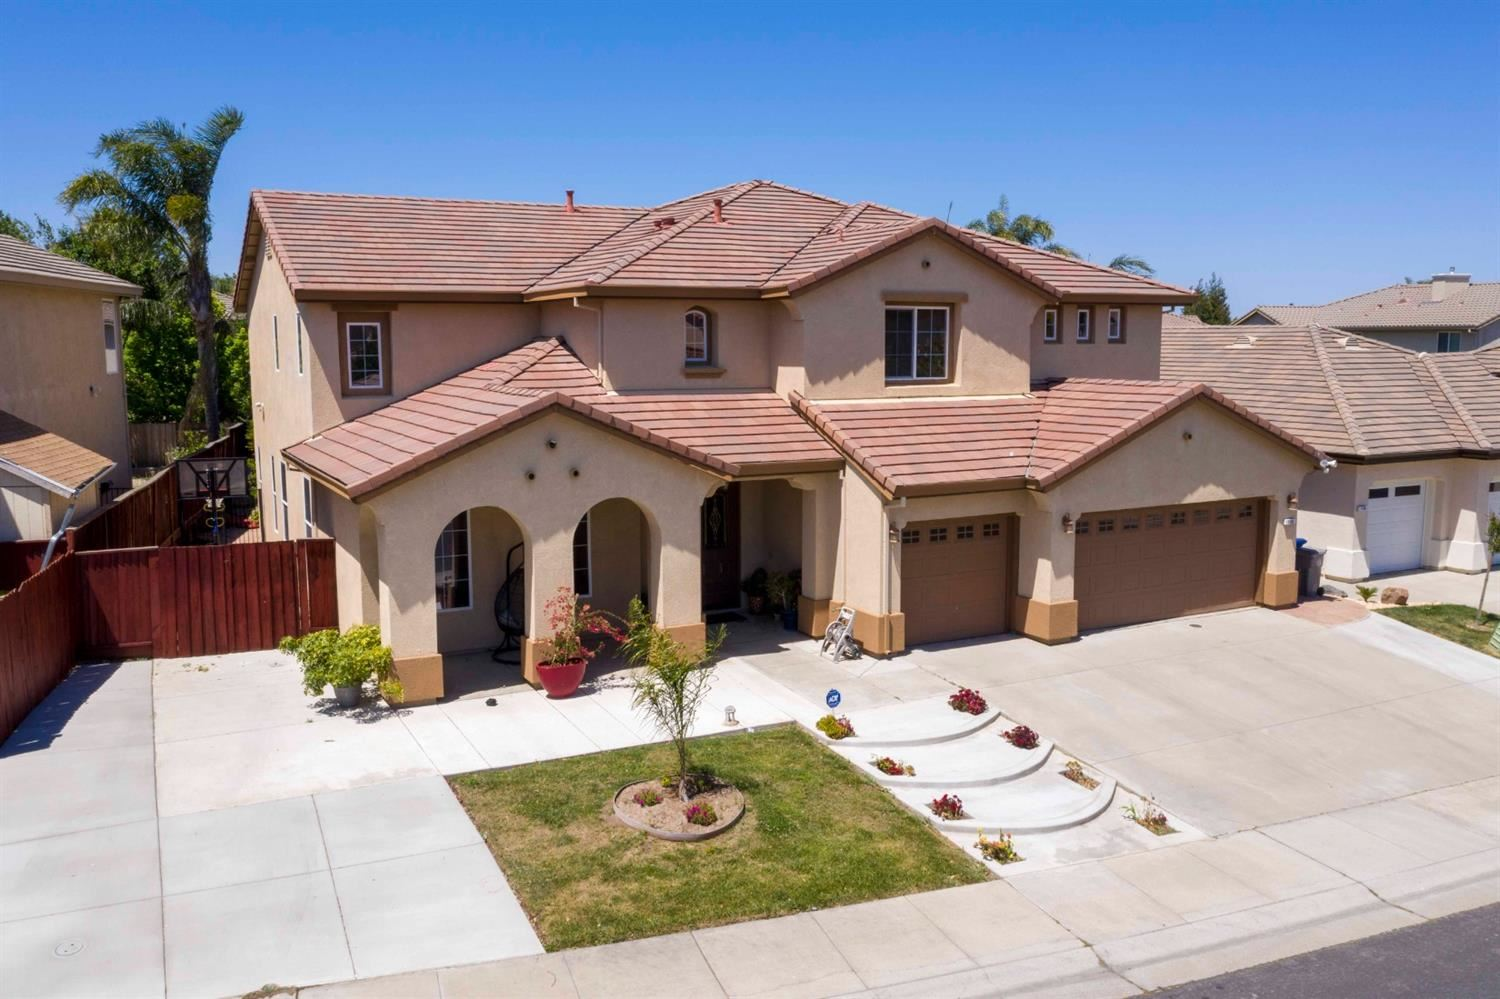 Photo of 120 Shrike, Sacramento, CA 95834 (MLS # 221048963)